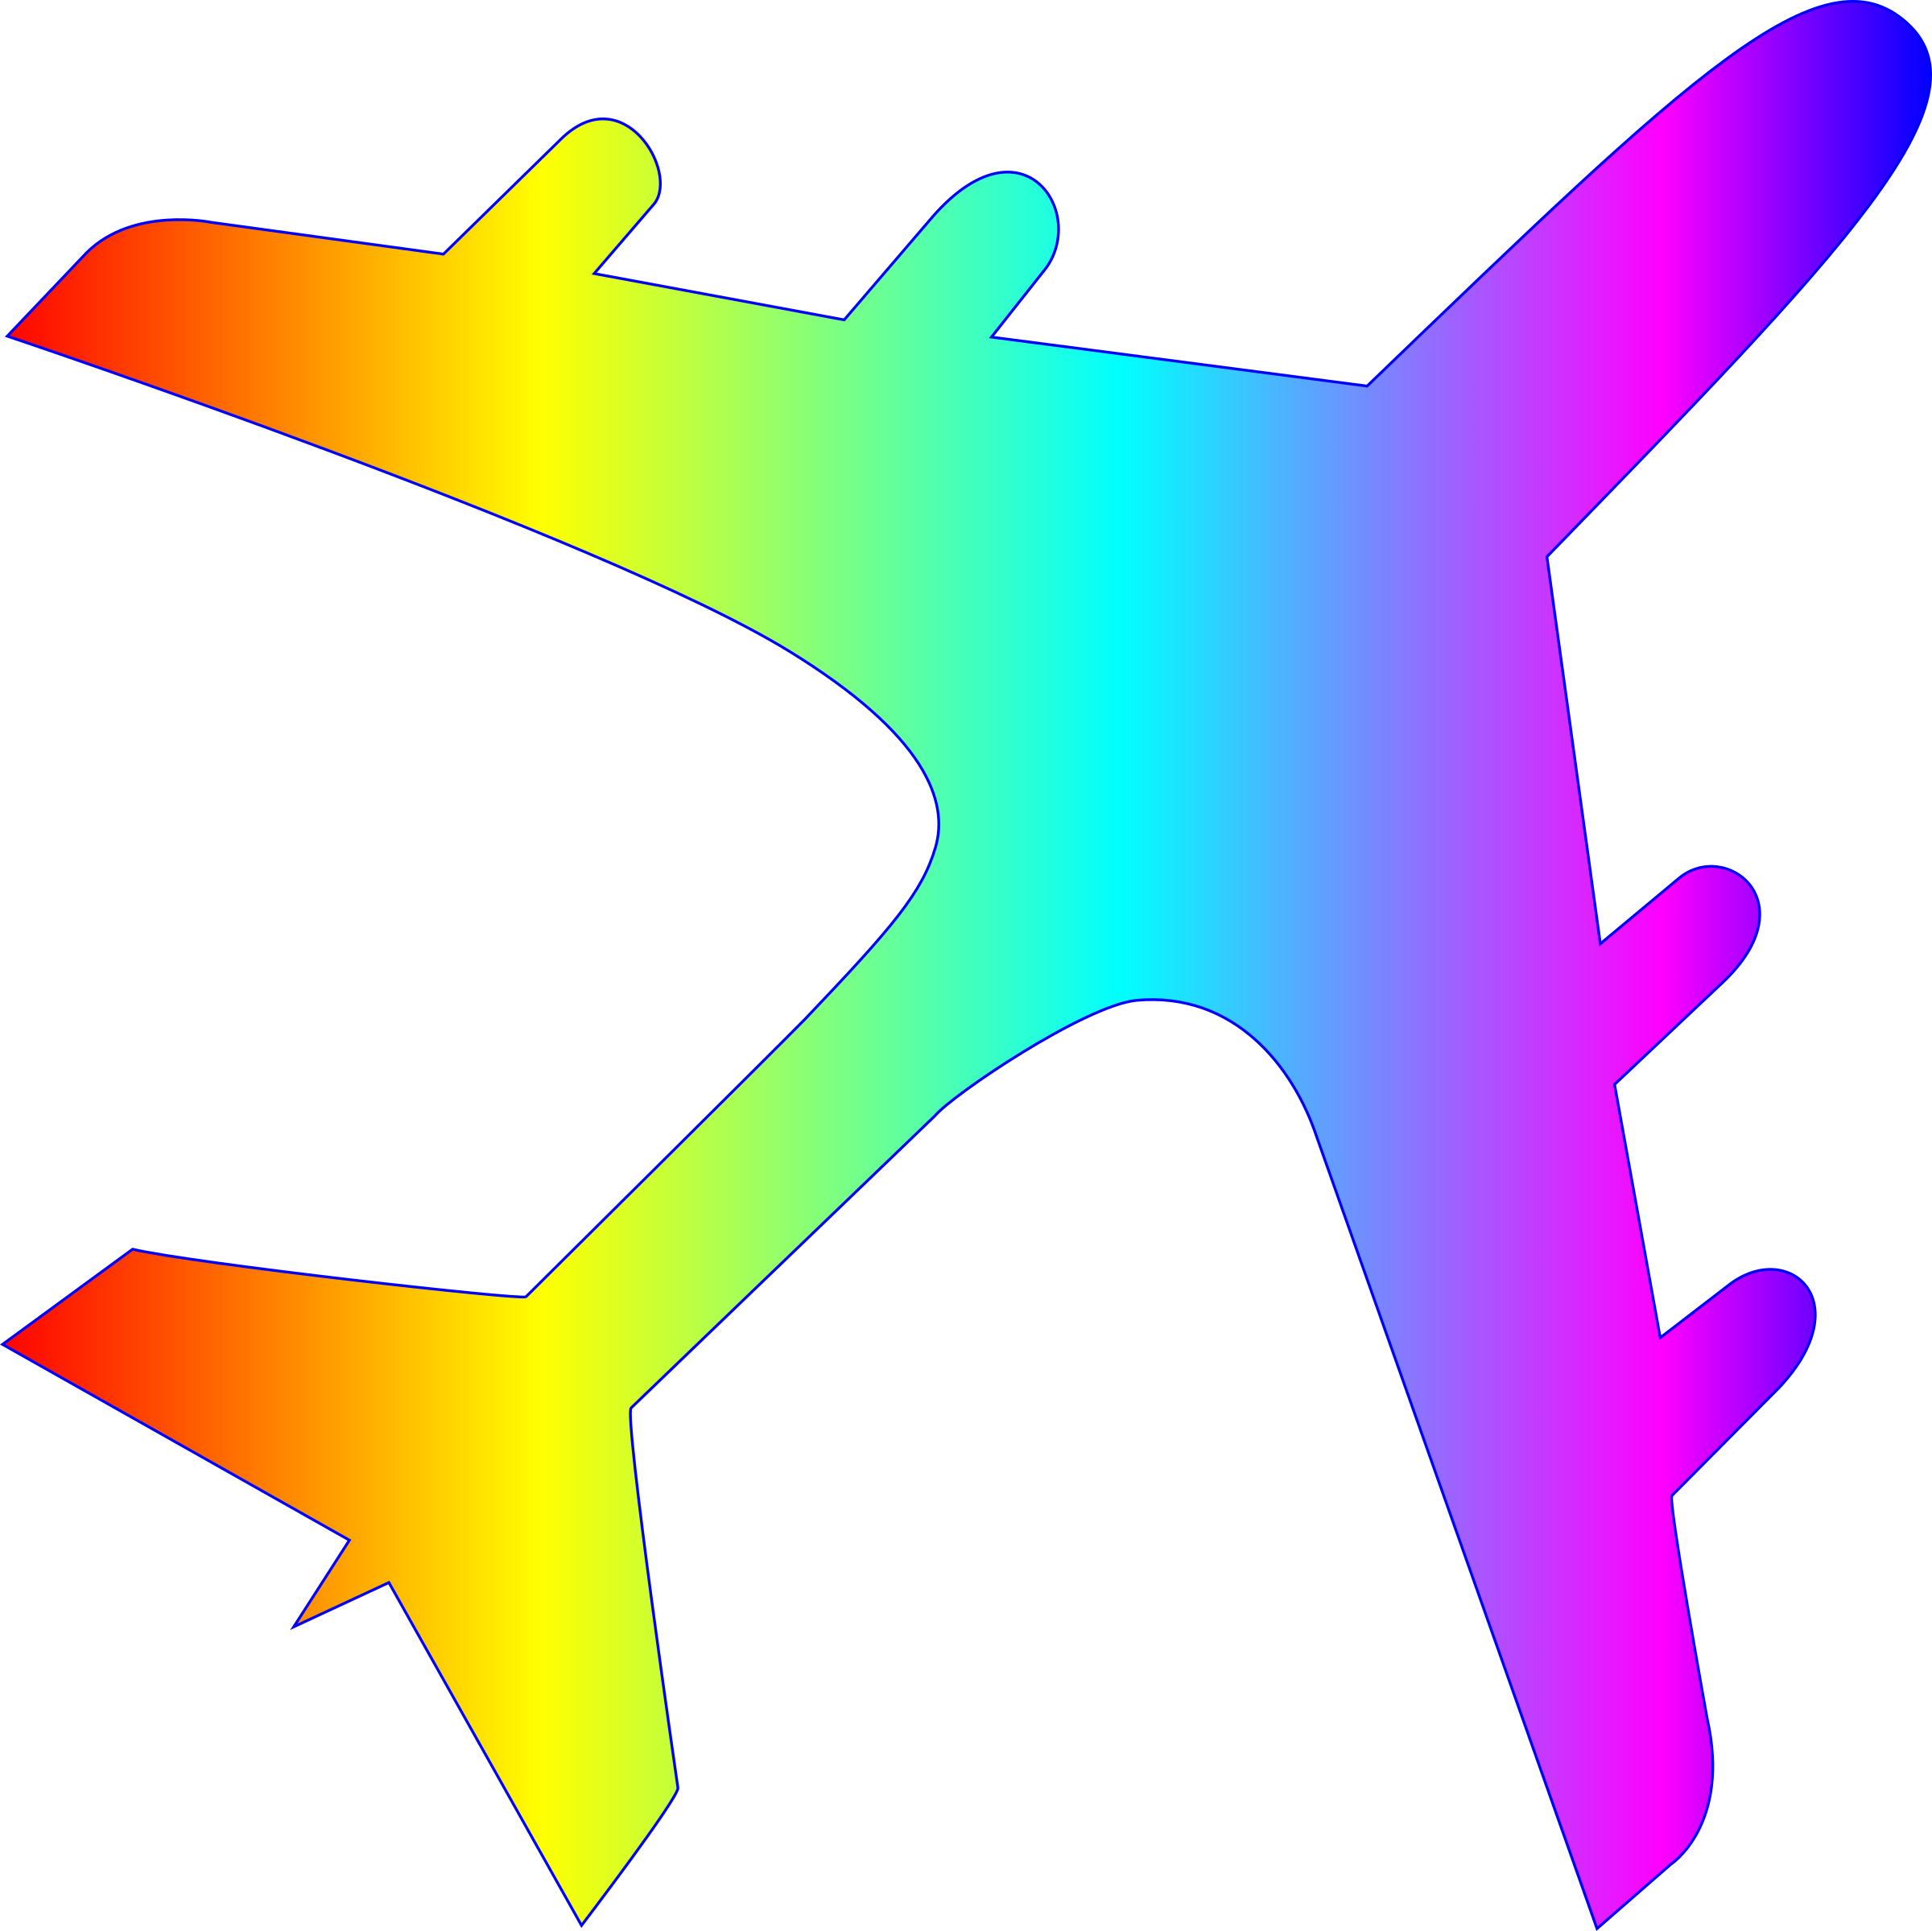 Airplane silhoutte with rainbow gradient by Manuela.